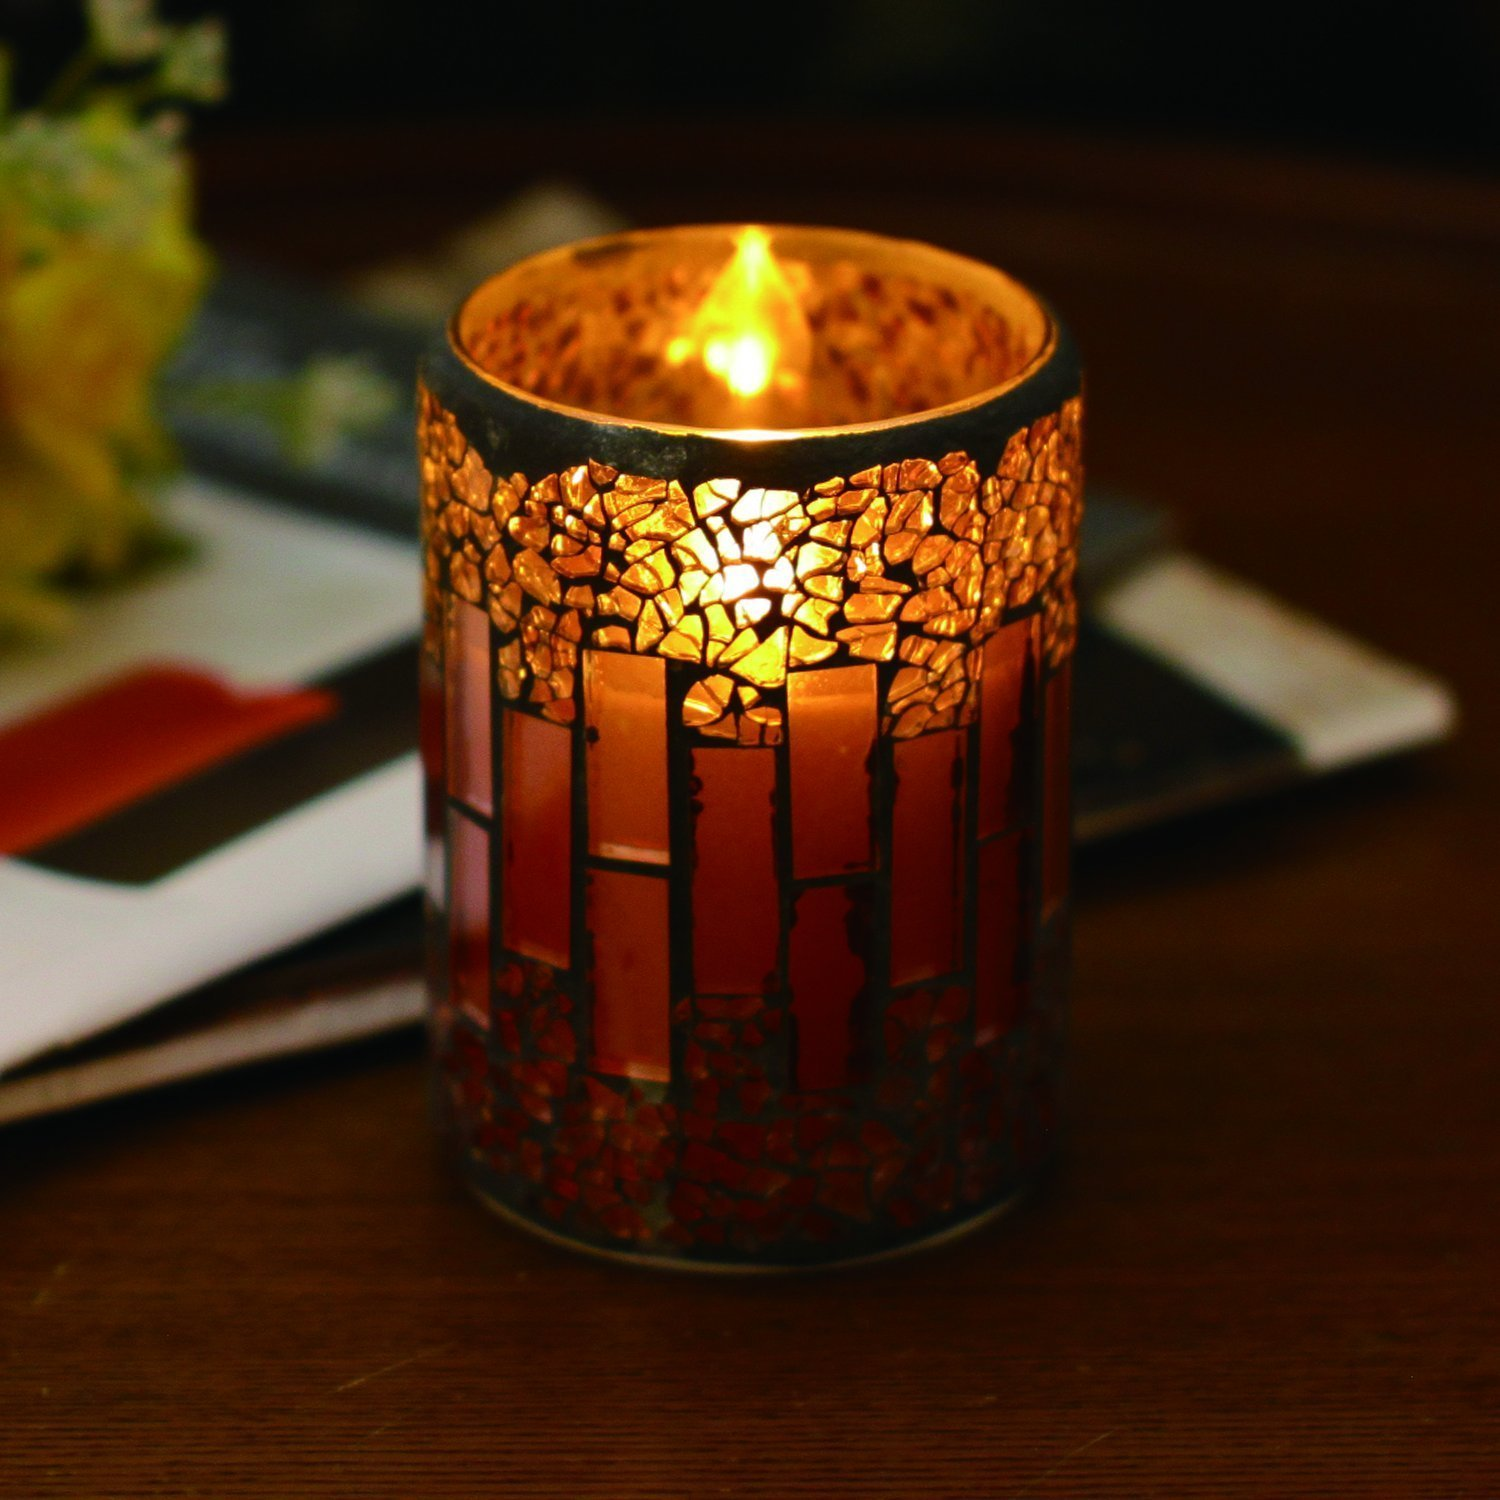 GiveU Mosaic Glass Flameless Pillar Led Wax Candle with Timer, 3X4, for Home Decor Christmas Wedding Party Gift(Red)